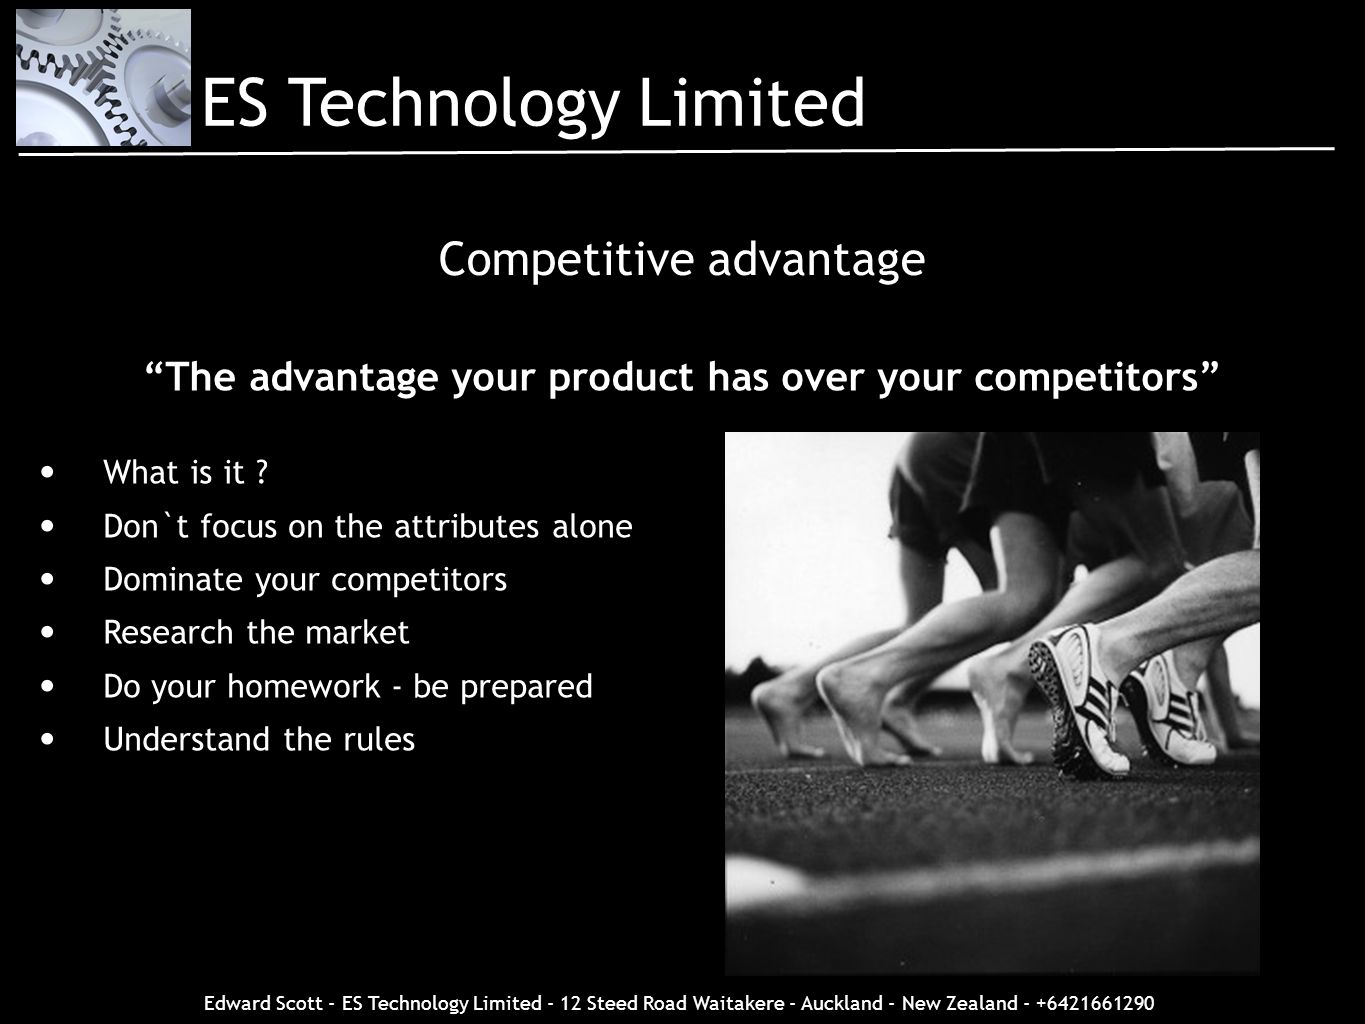 Edward Scott - ES Technology Limited - 12 Steed Road Waitakere - Auckland - New Zealand - +6421661290 The advantage your product has over your competi